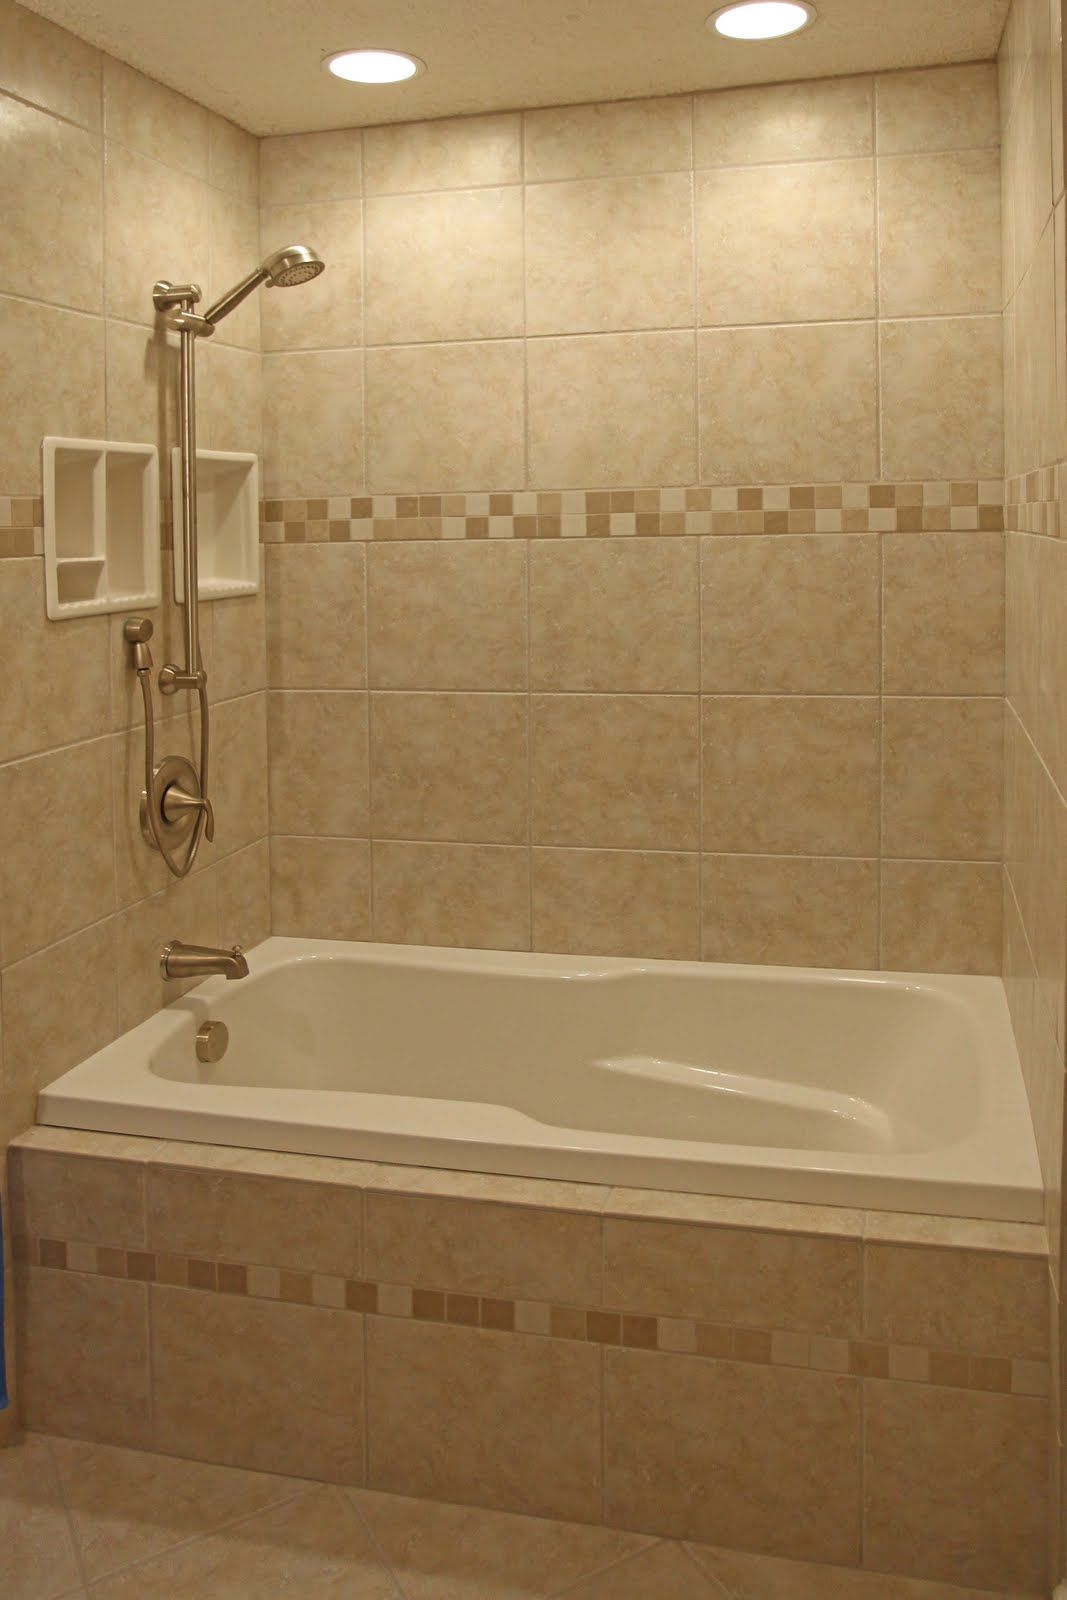 Shower And Bath Remodel Bathroom Design Ideas Ceramic Tile